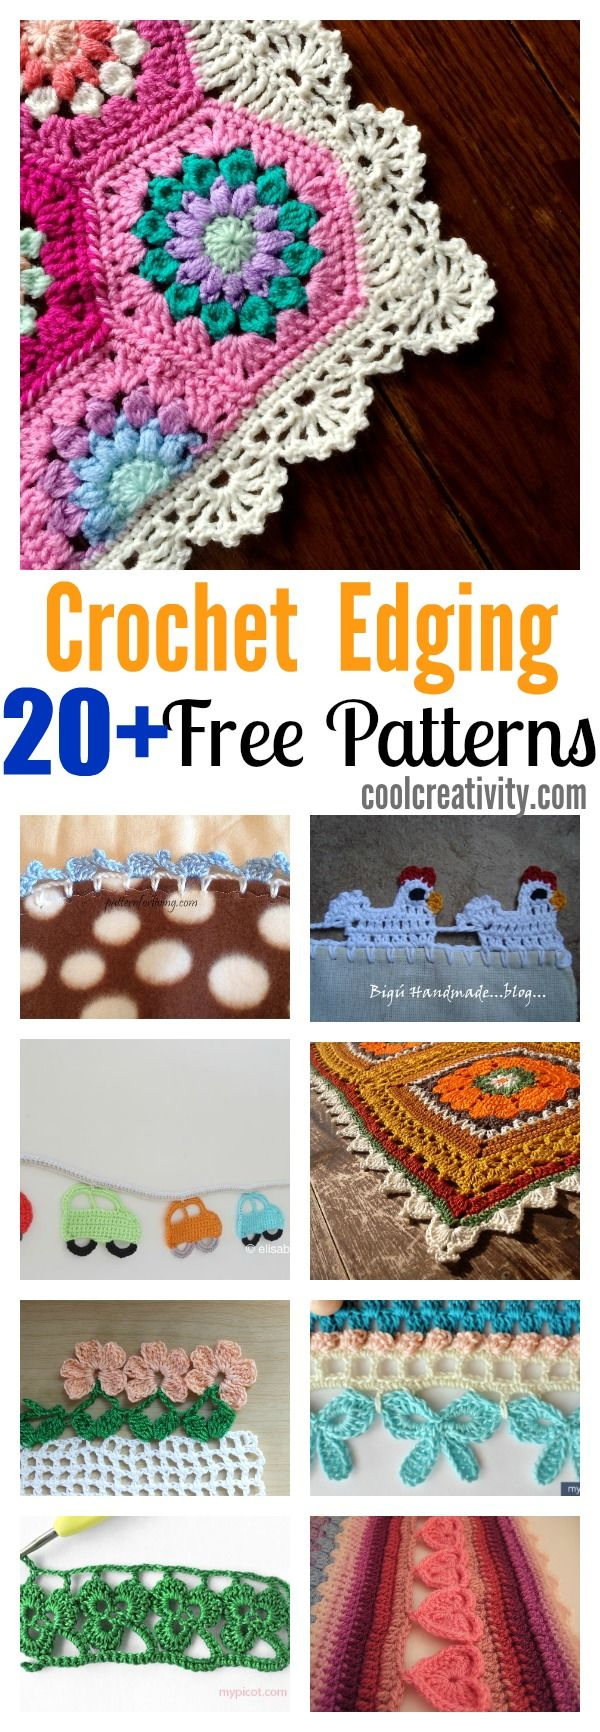 20 + Crochet Free Edging Patterns You Should Know | Pinterest ...